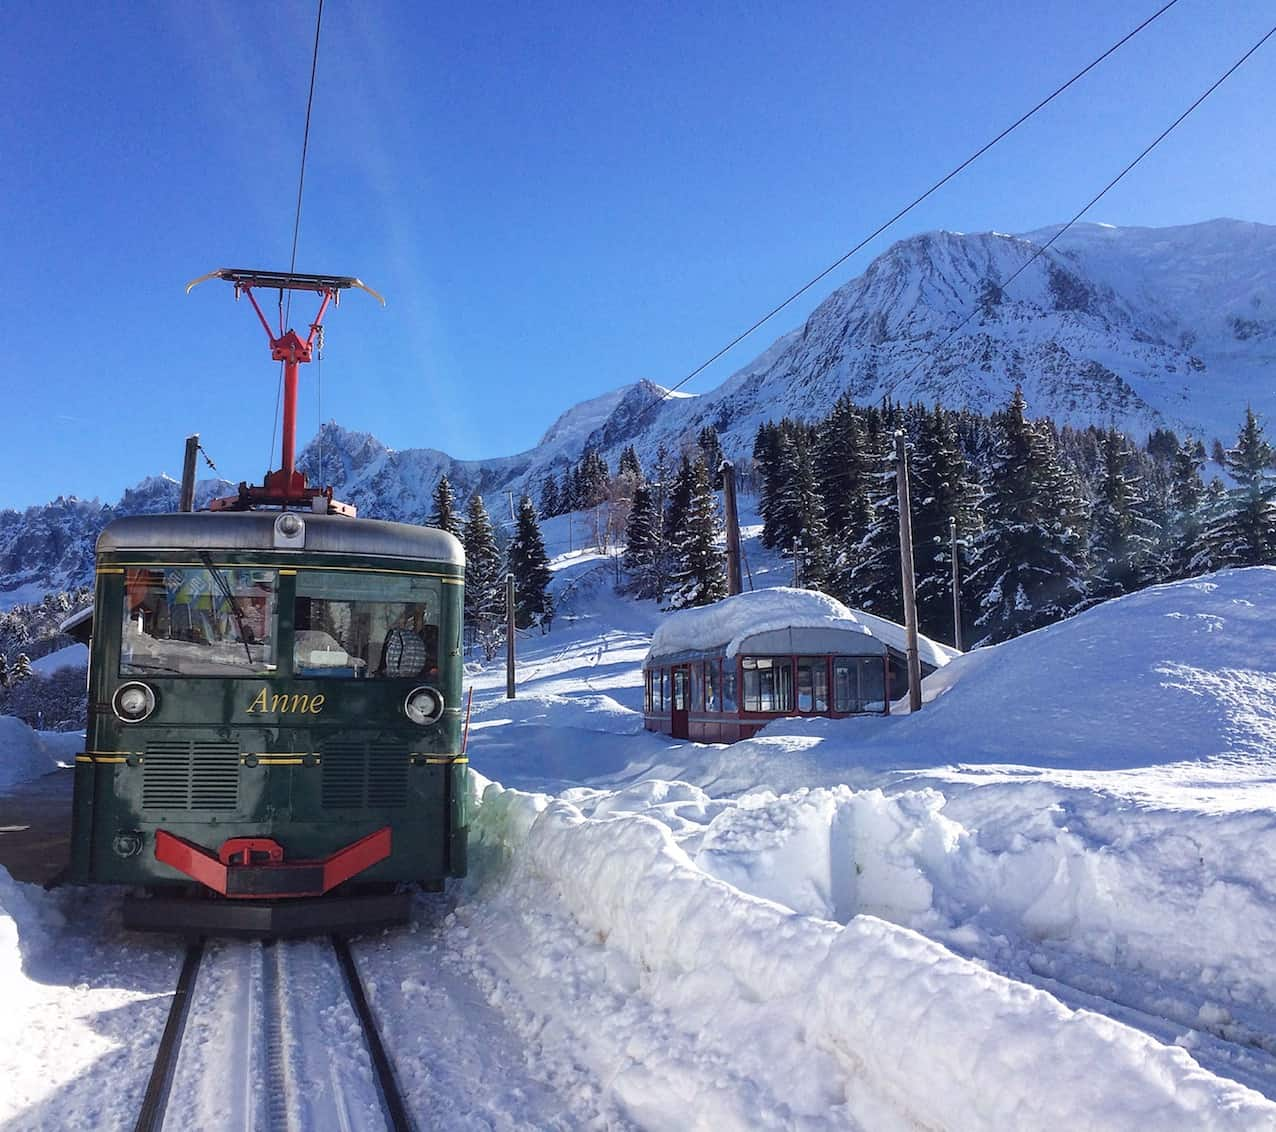 Mont Blanc train chamonix for non skiers